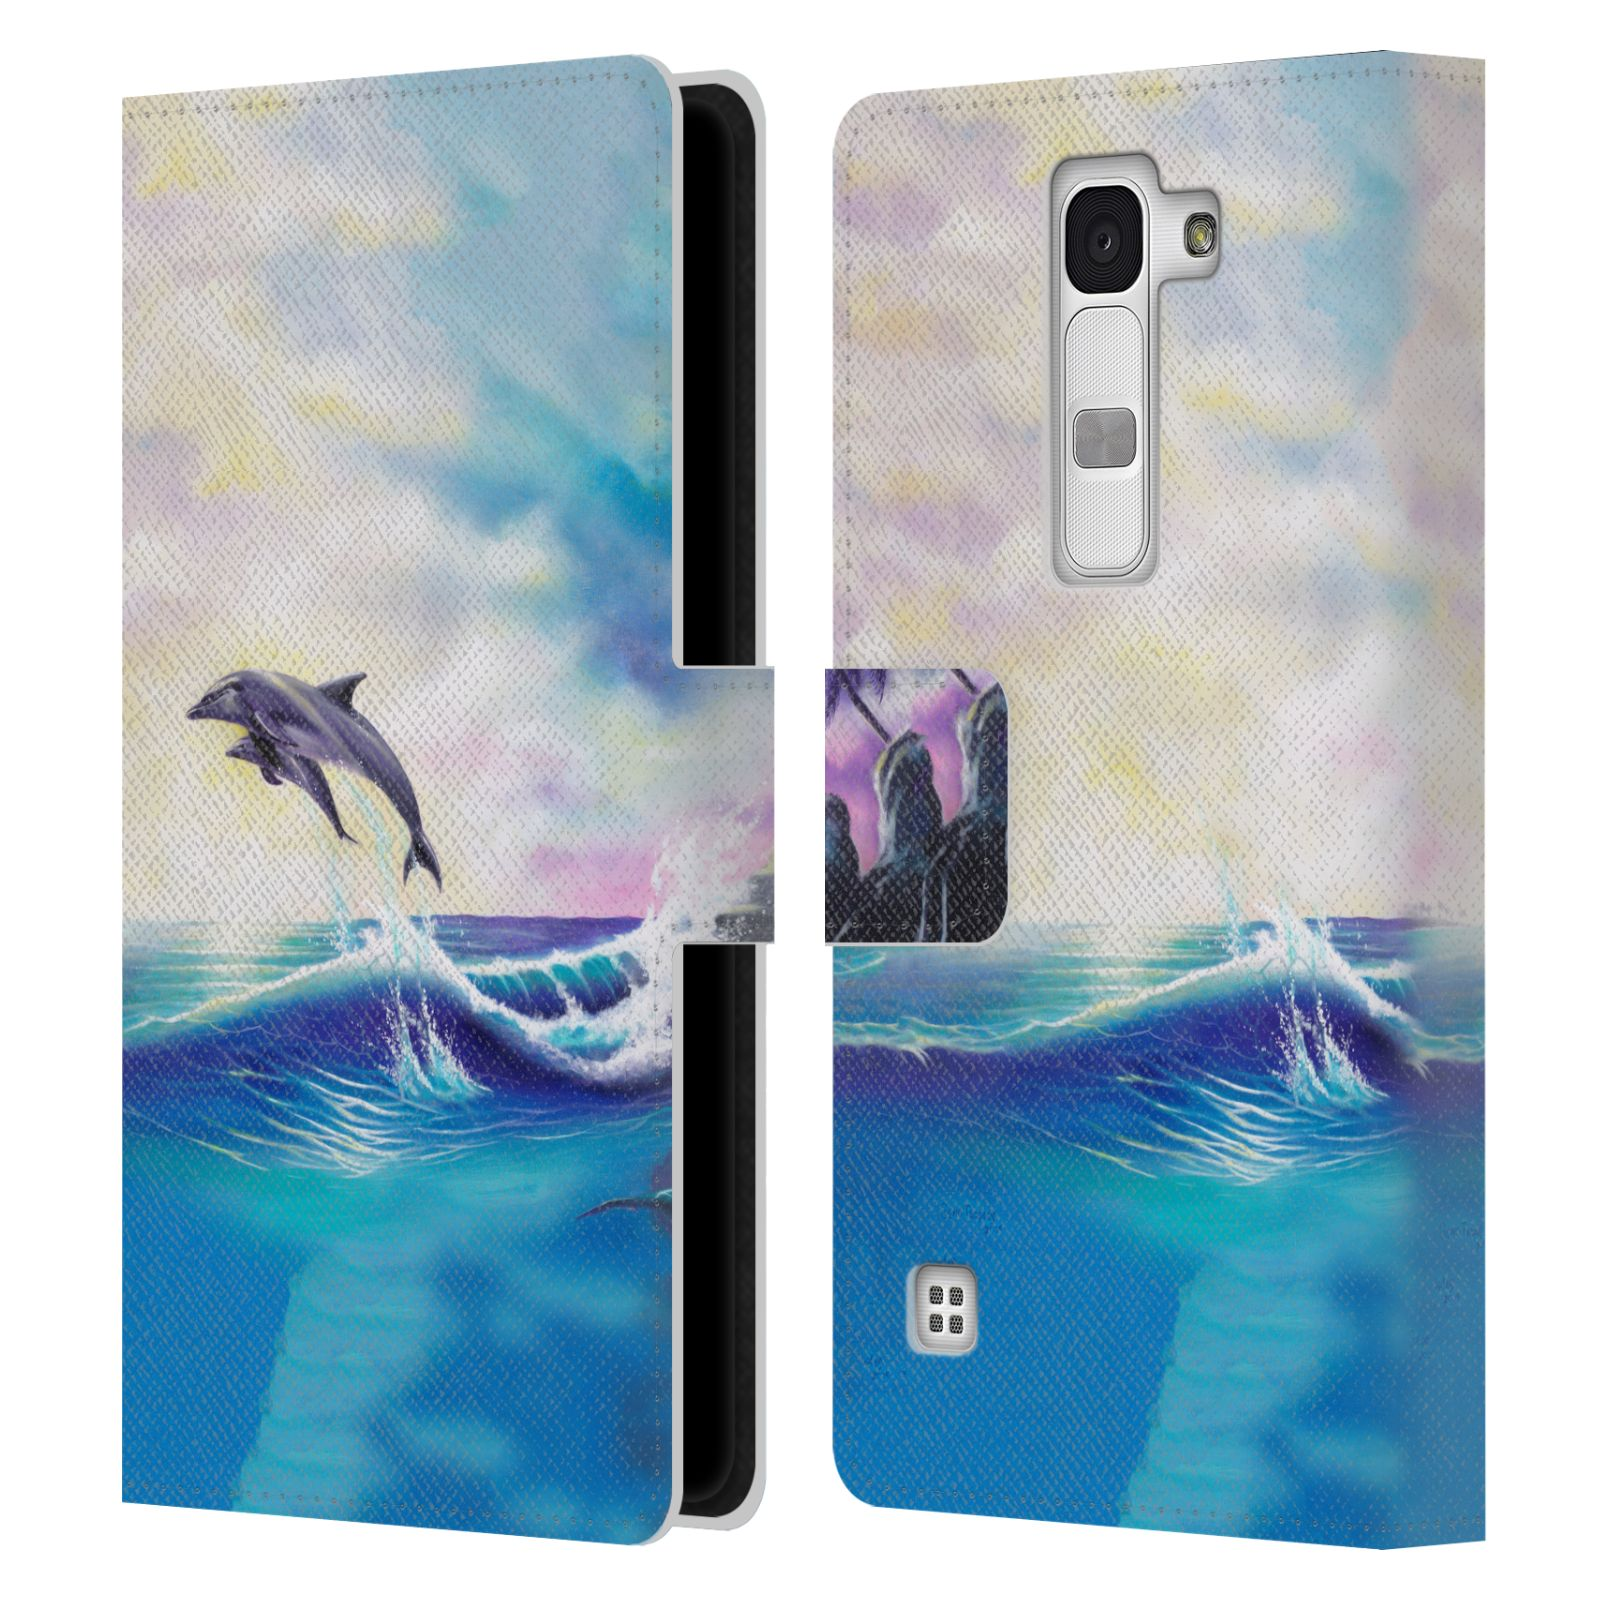 OFFICIAL-GENO-PEOPLES-ART-HOLIDAY-LEATHER-BOOK-WALLET-CASE-COVER-FOR-LG-PHONES-2